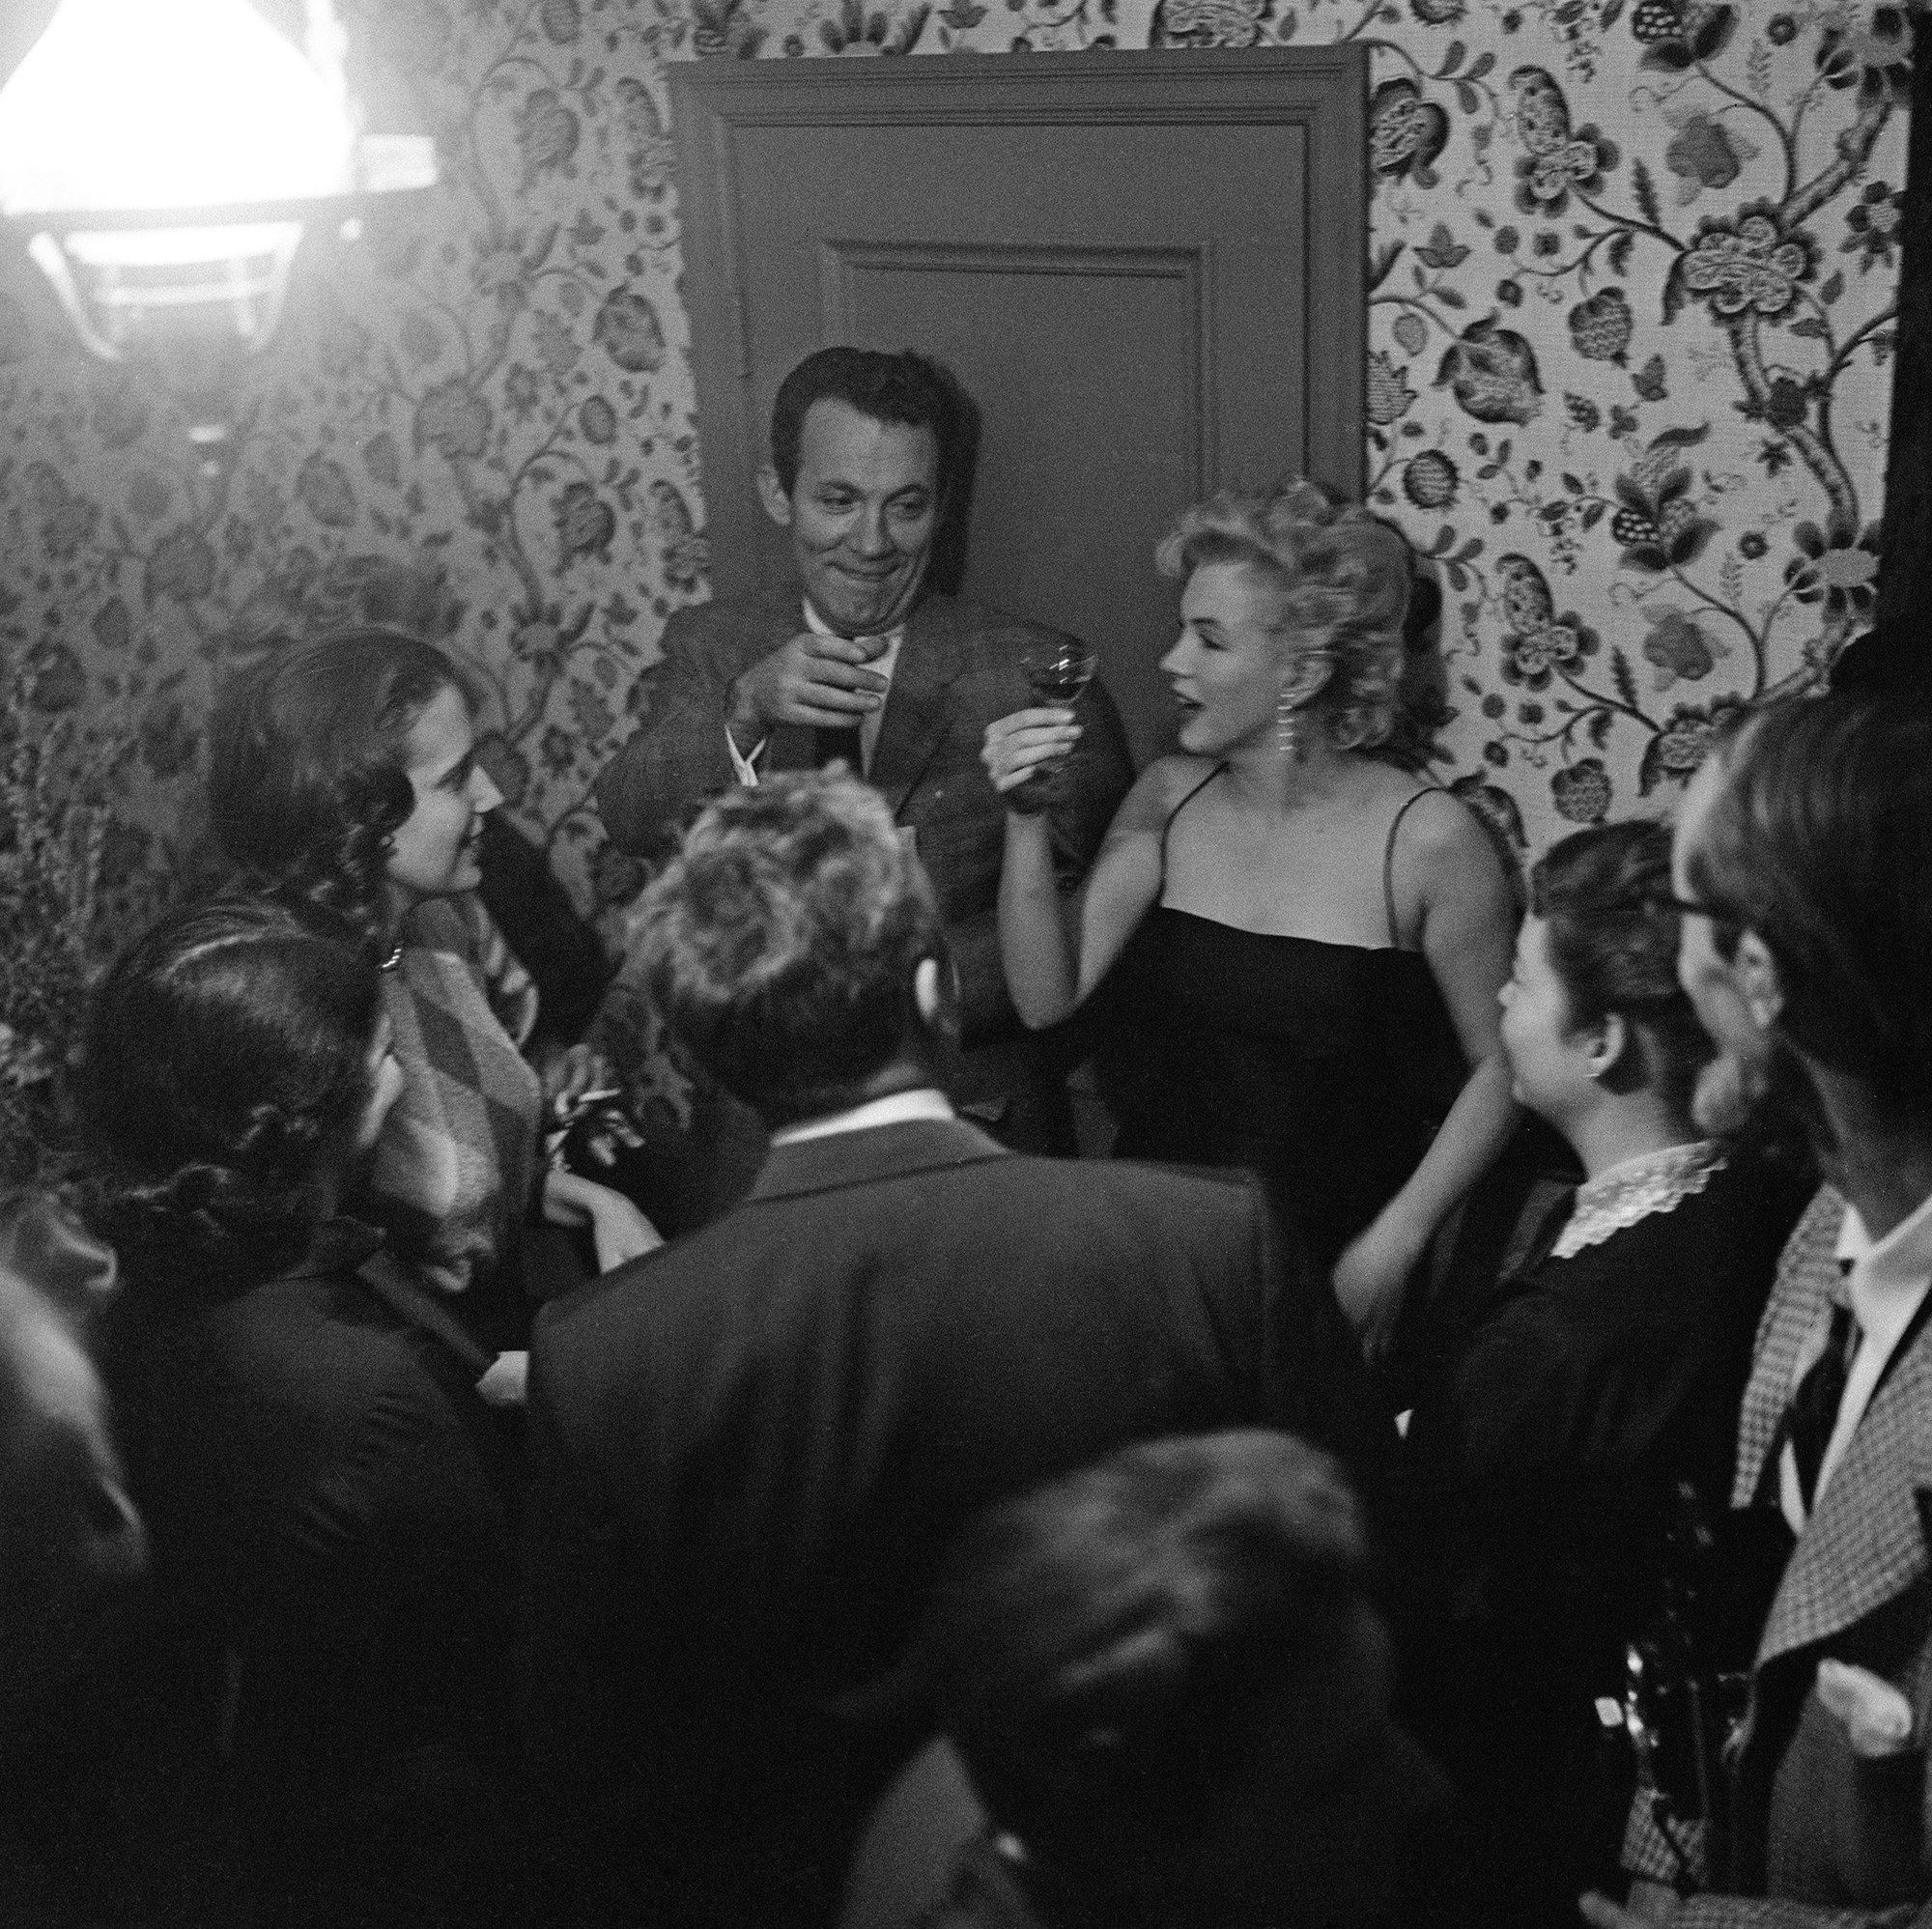 Marilyn Monroe holds up a small glass of alcohol, surrounded by people at a party